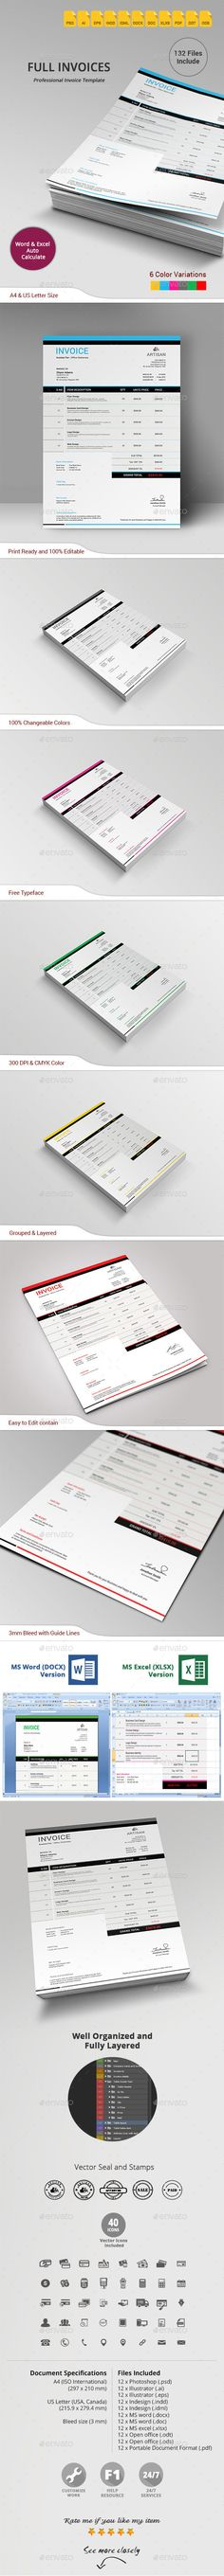 #Invoice - #Proposals & Invoices #Stationery Download here: https://graphicriver.net/item/invoice/9900319?ref=alena994